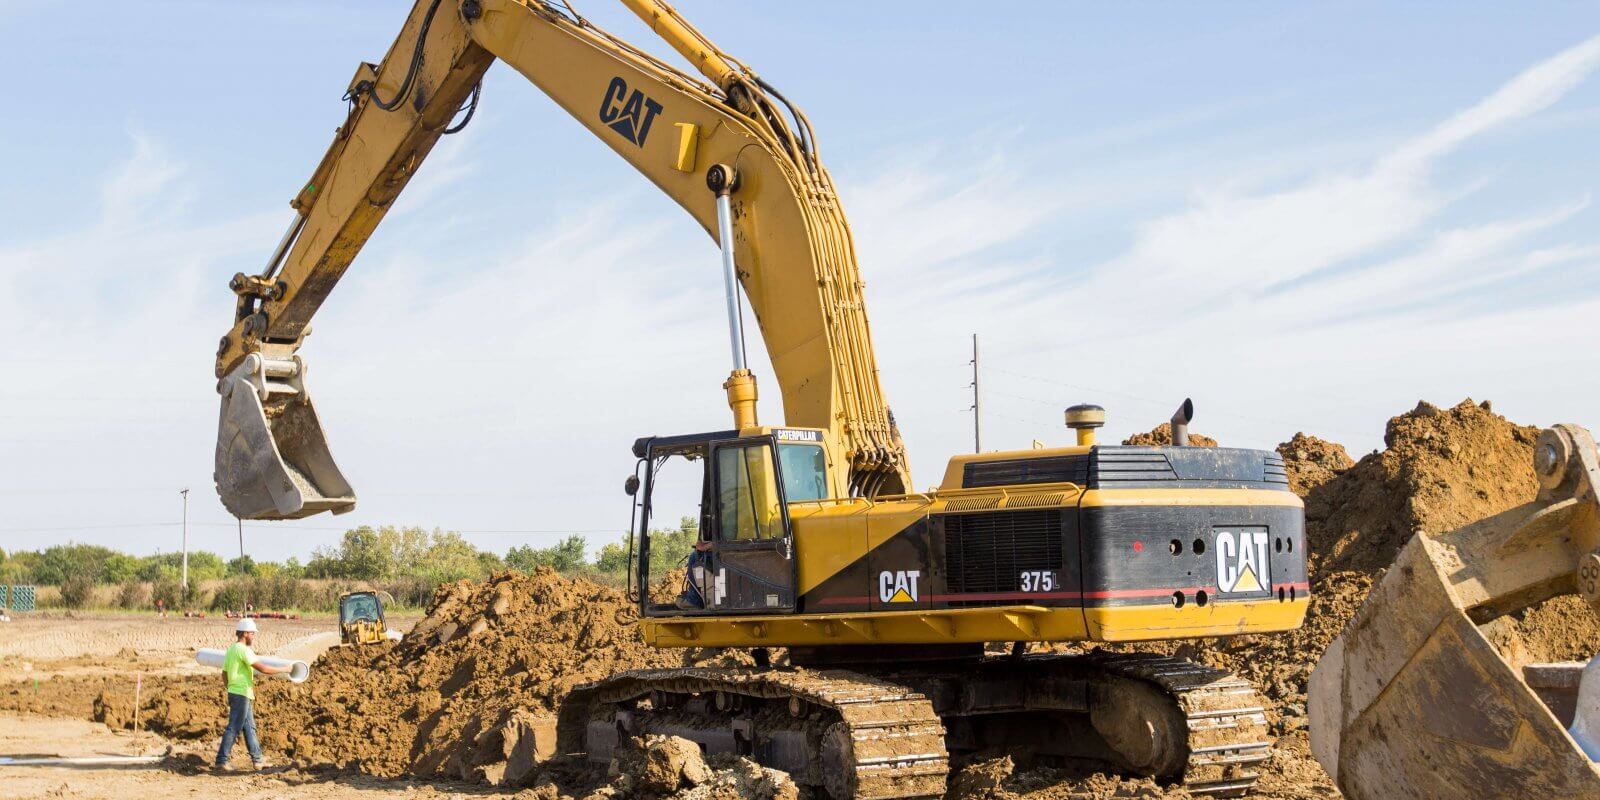 Qualities Desirable in the Excavation Contractor